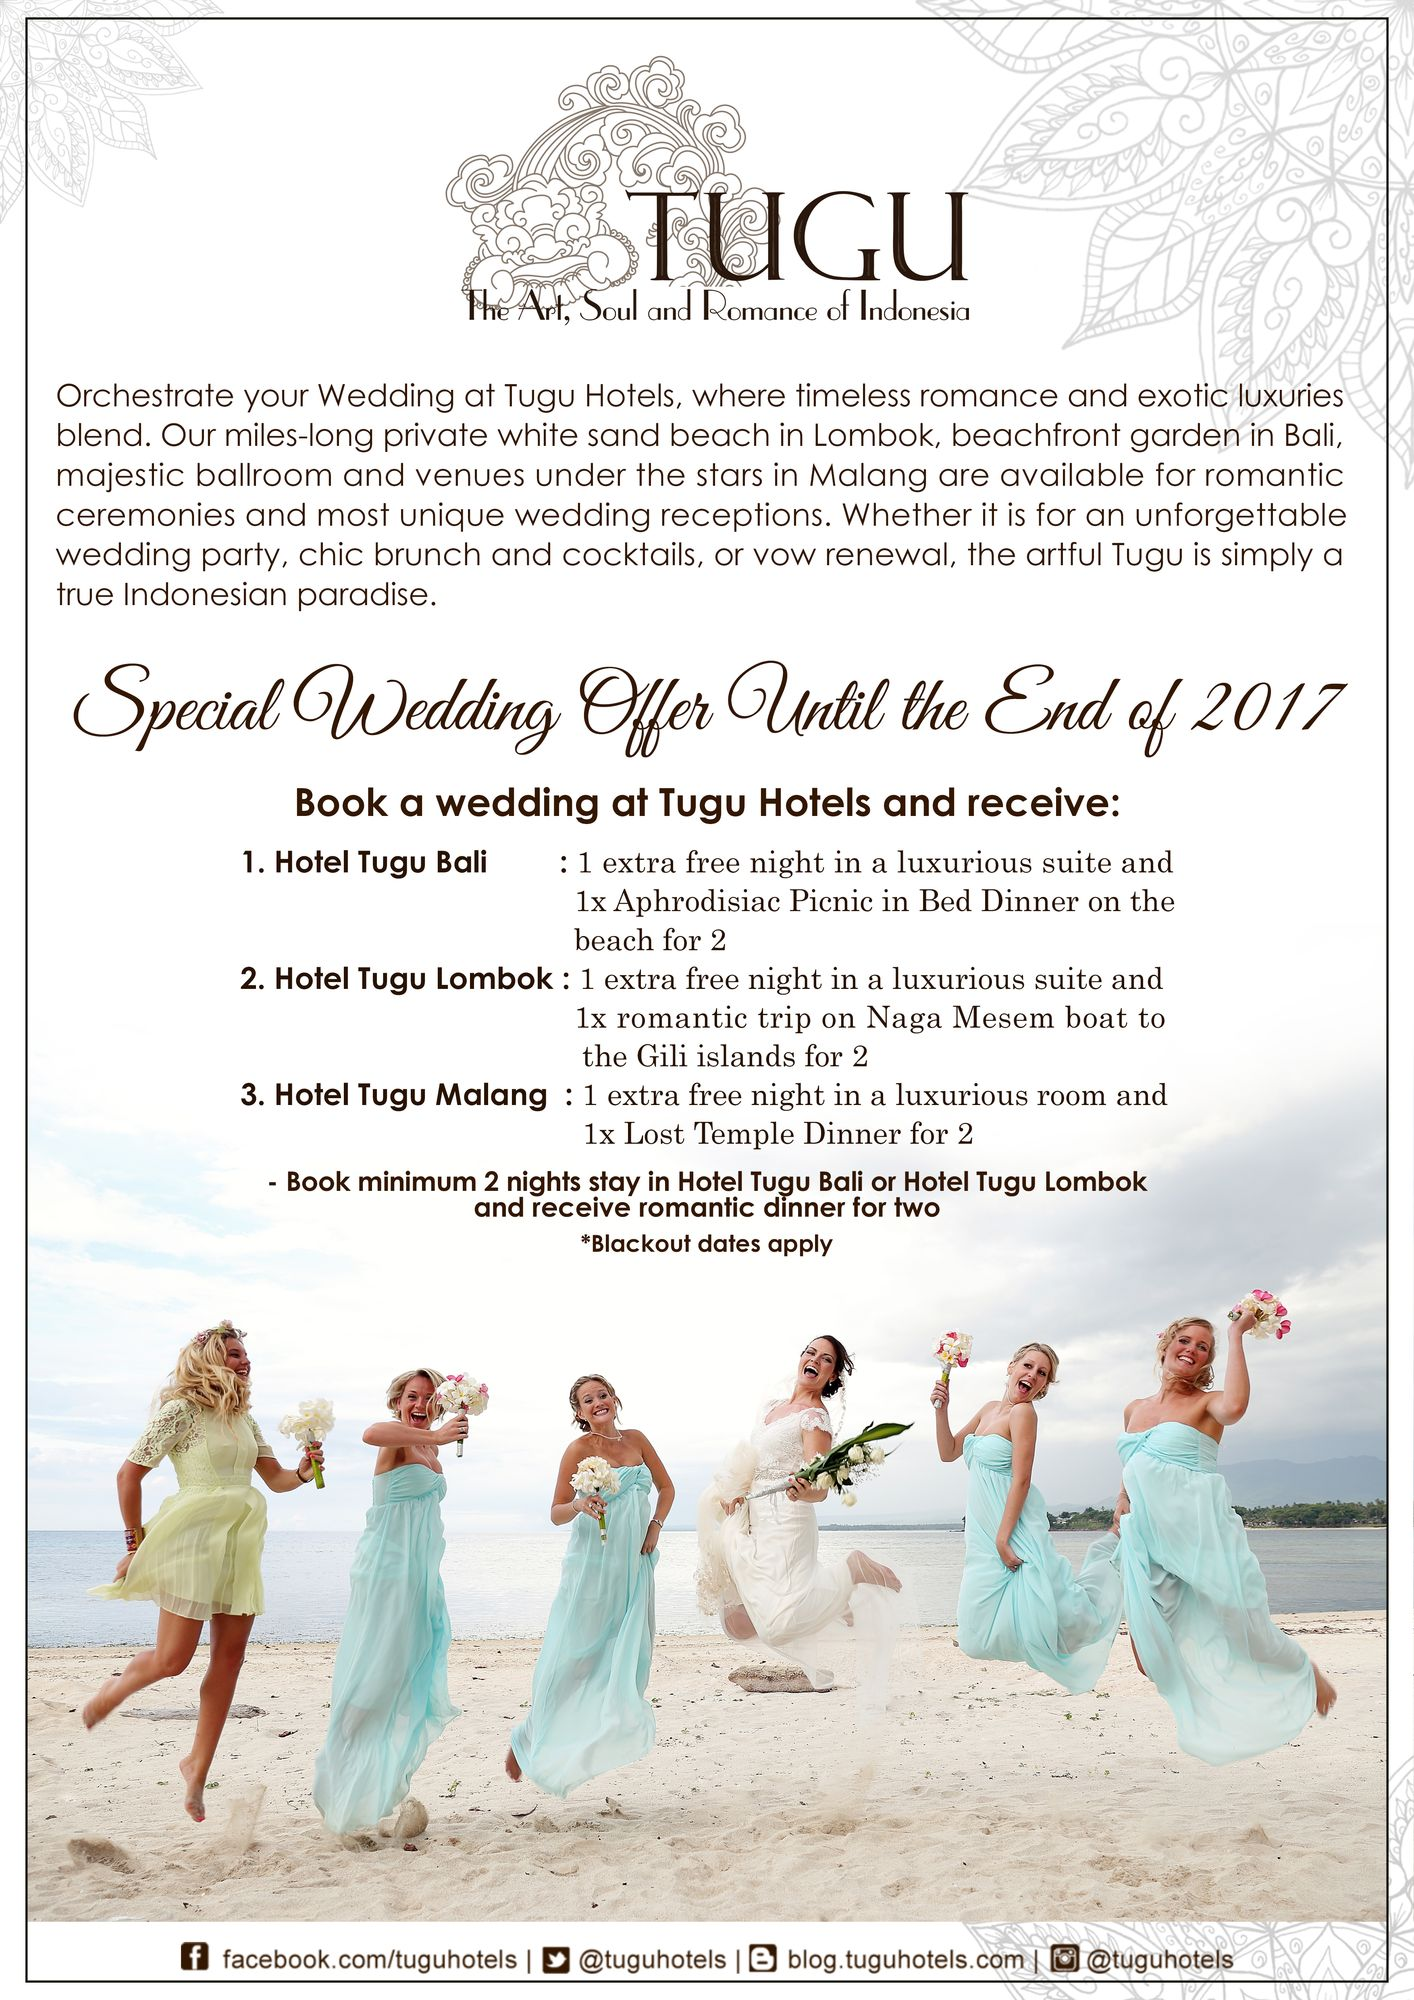 Special Wedding Offer Until the End of 2017